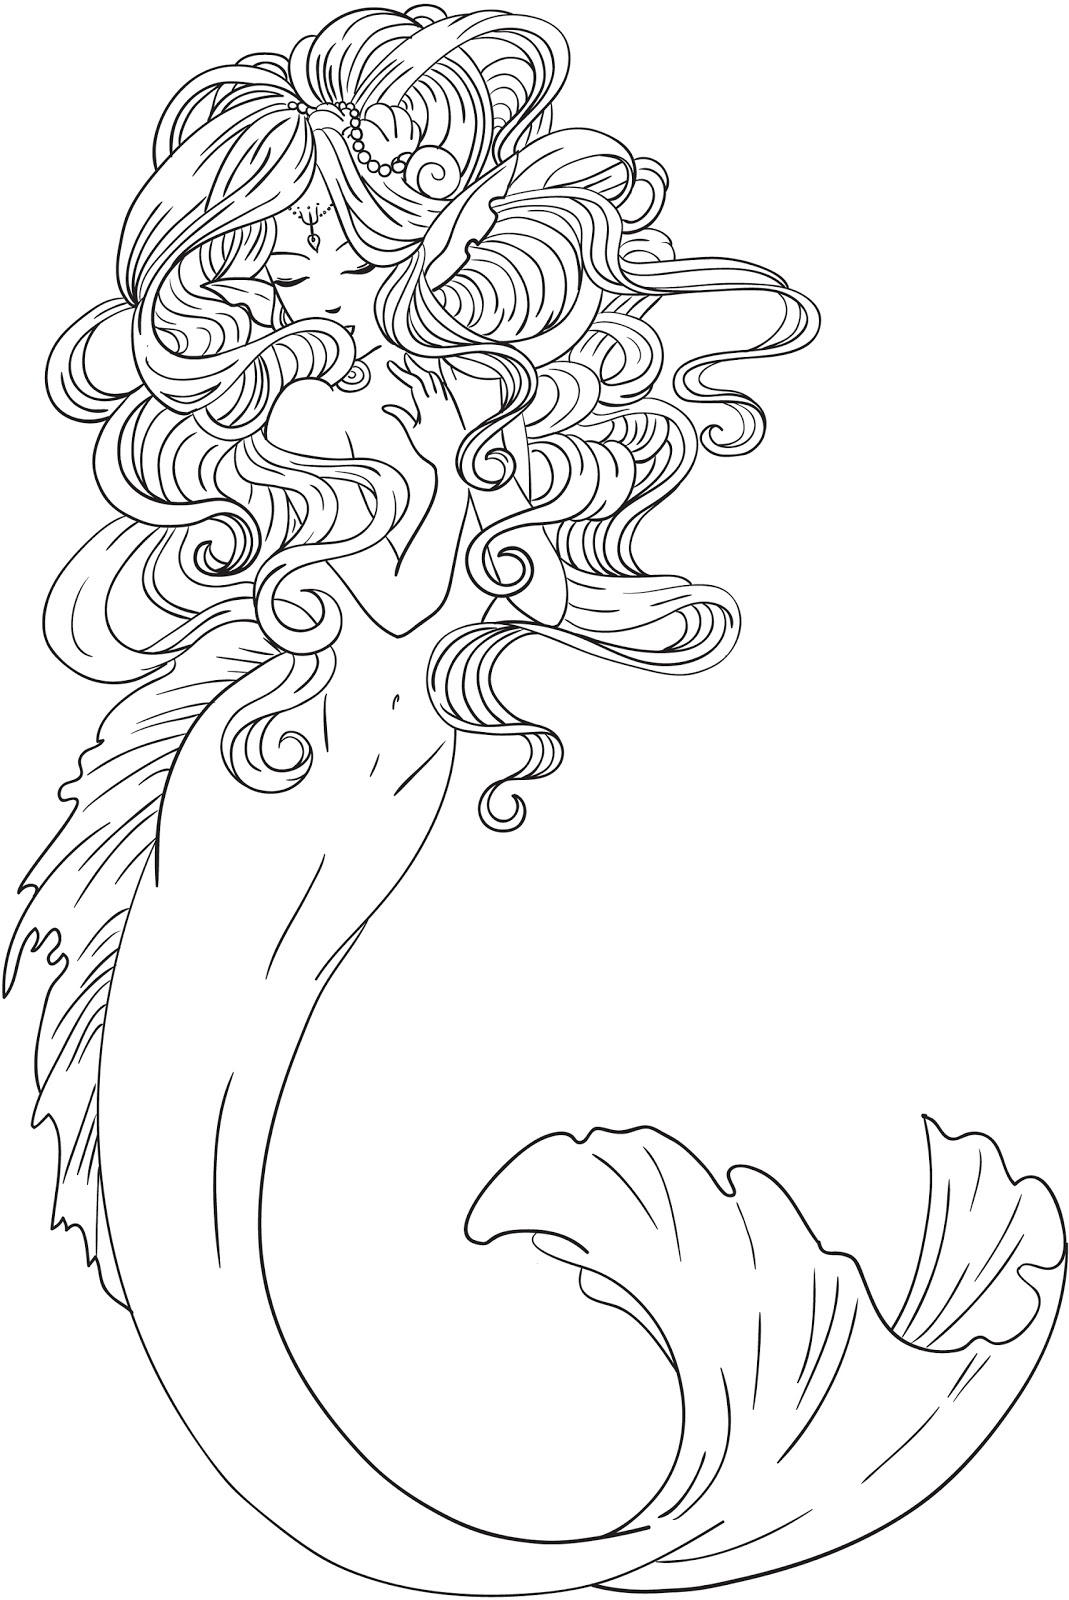 mermaid coloring pages for toddlers - coloring pages of mermaids